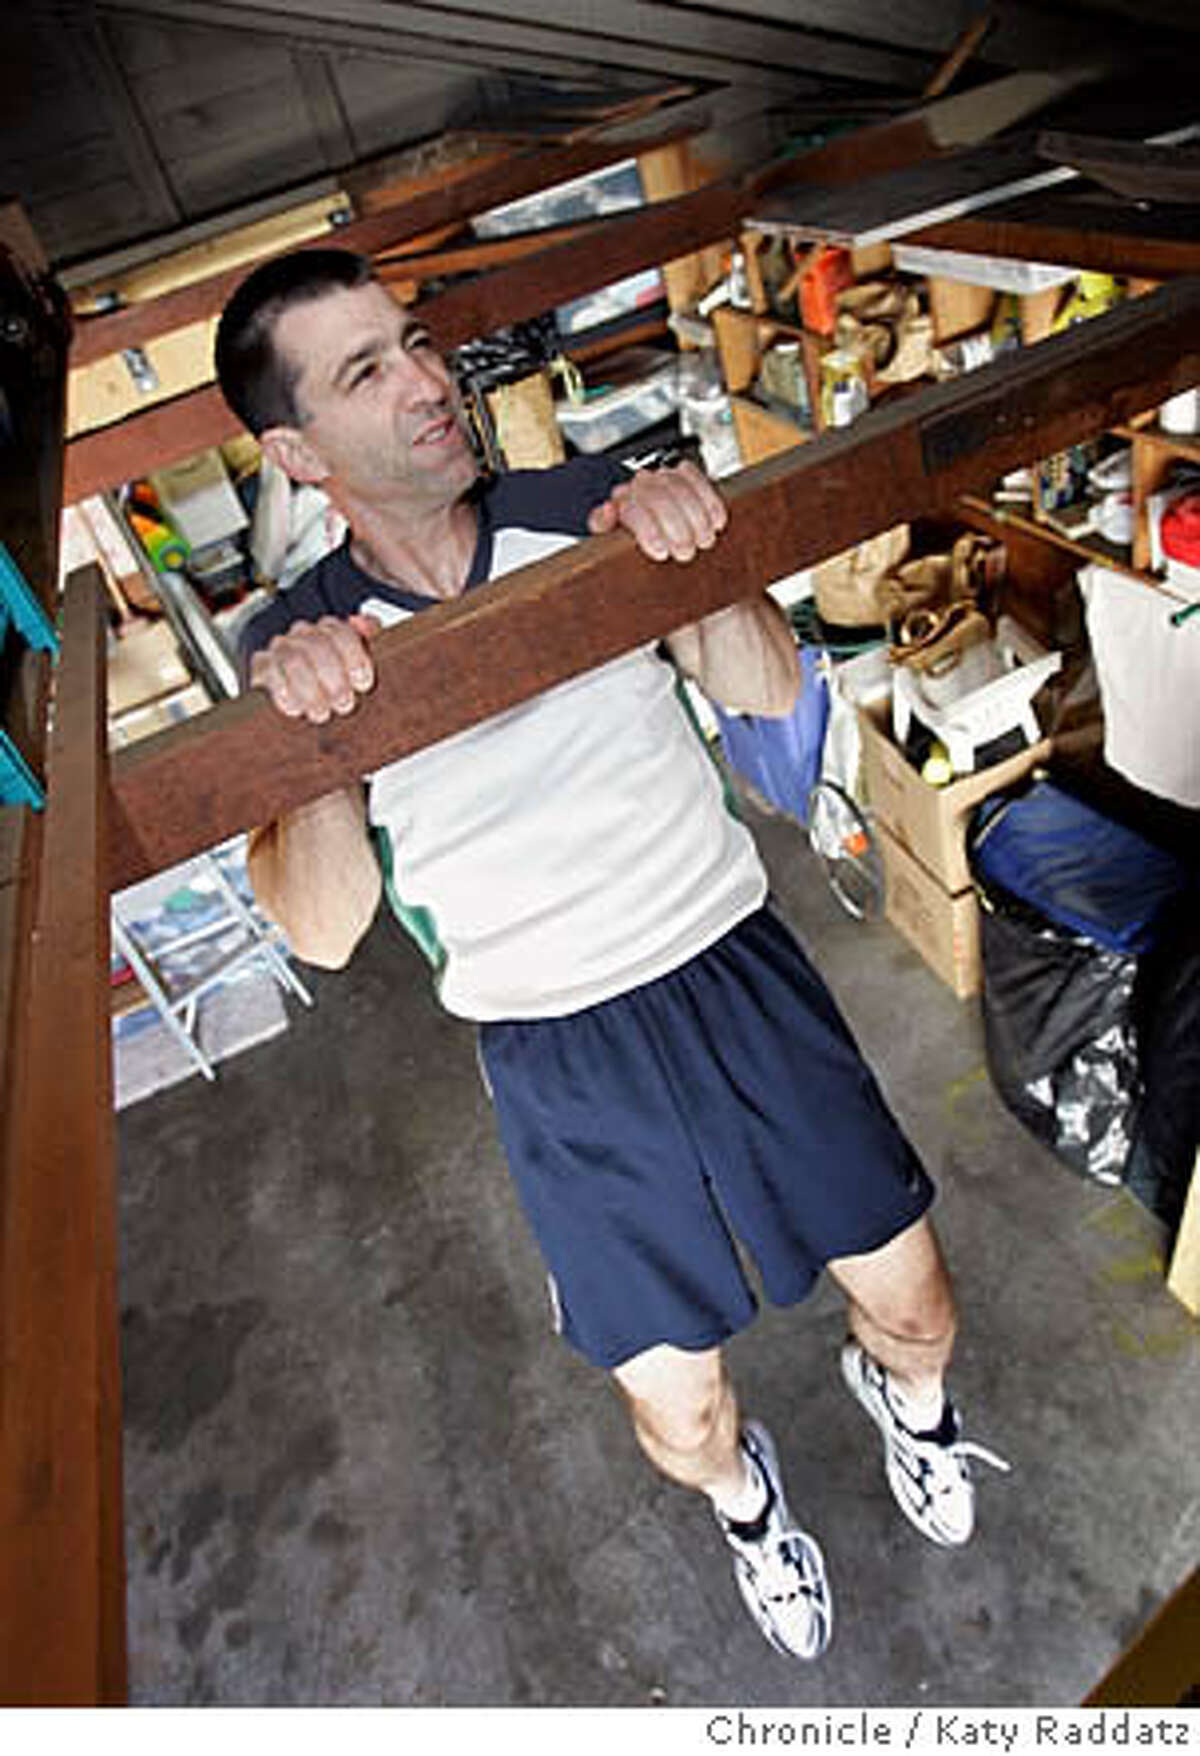 Guy Schott has set a record for pullups. He is shown in his garage, doing pullups on the very beam that he began doing pullups on. Photo taken on 11/20/05, in Santa Rosa, CA. By Katy Raddatz / The San Francisco Chronicle